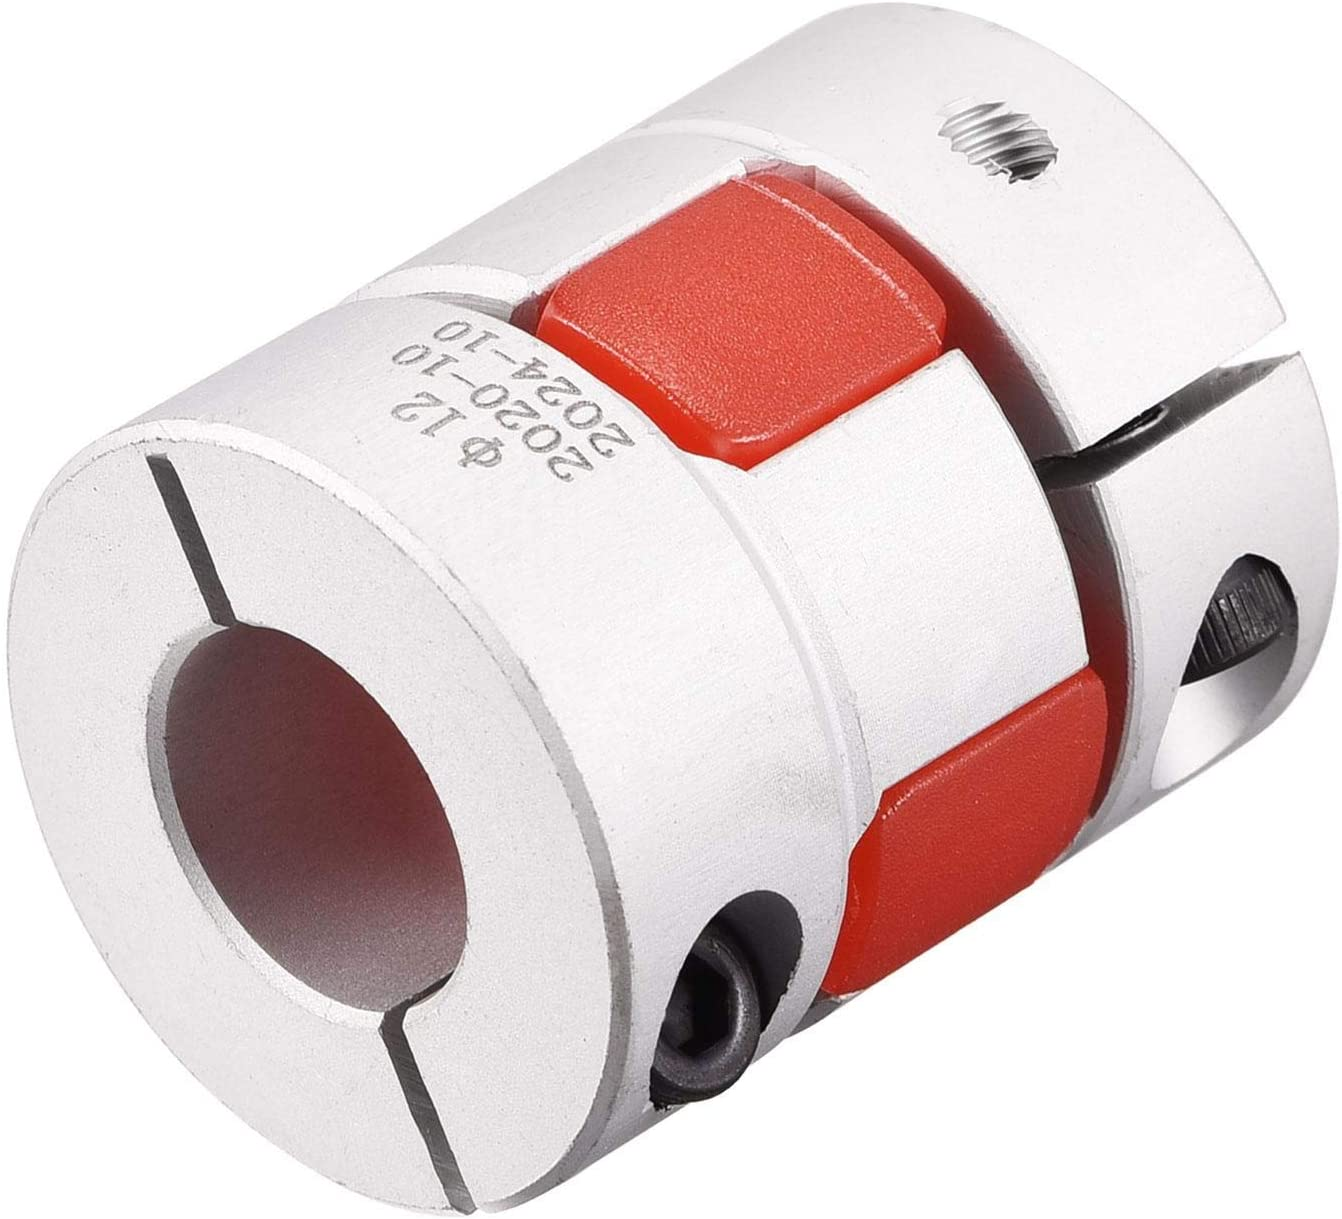 uxcell Omaha Mall 6.35mm to 12mm Bore Jaw Factory outlet L31xD25 Flexible Coupler Coupling